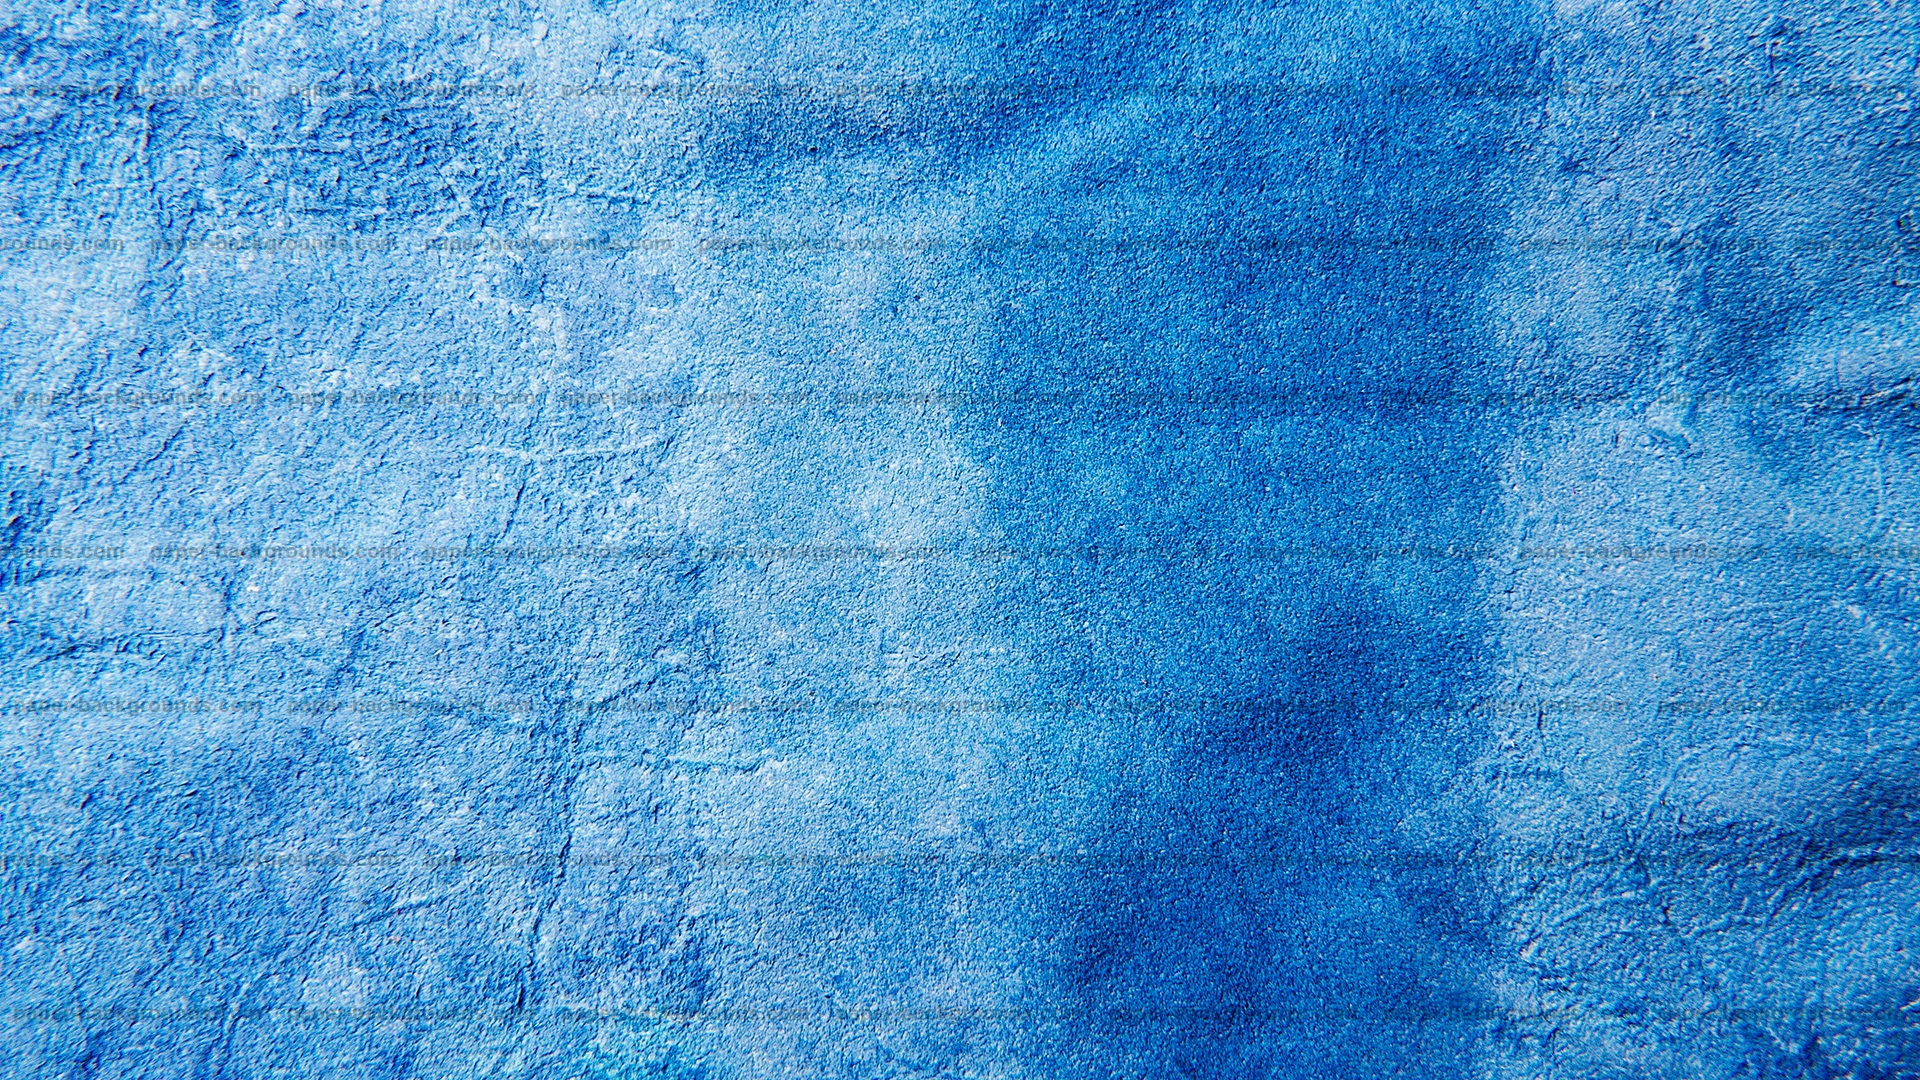 Grunge Blue Soft Leather Texture HD